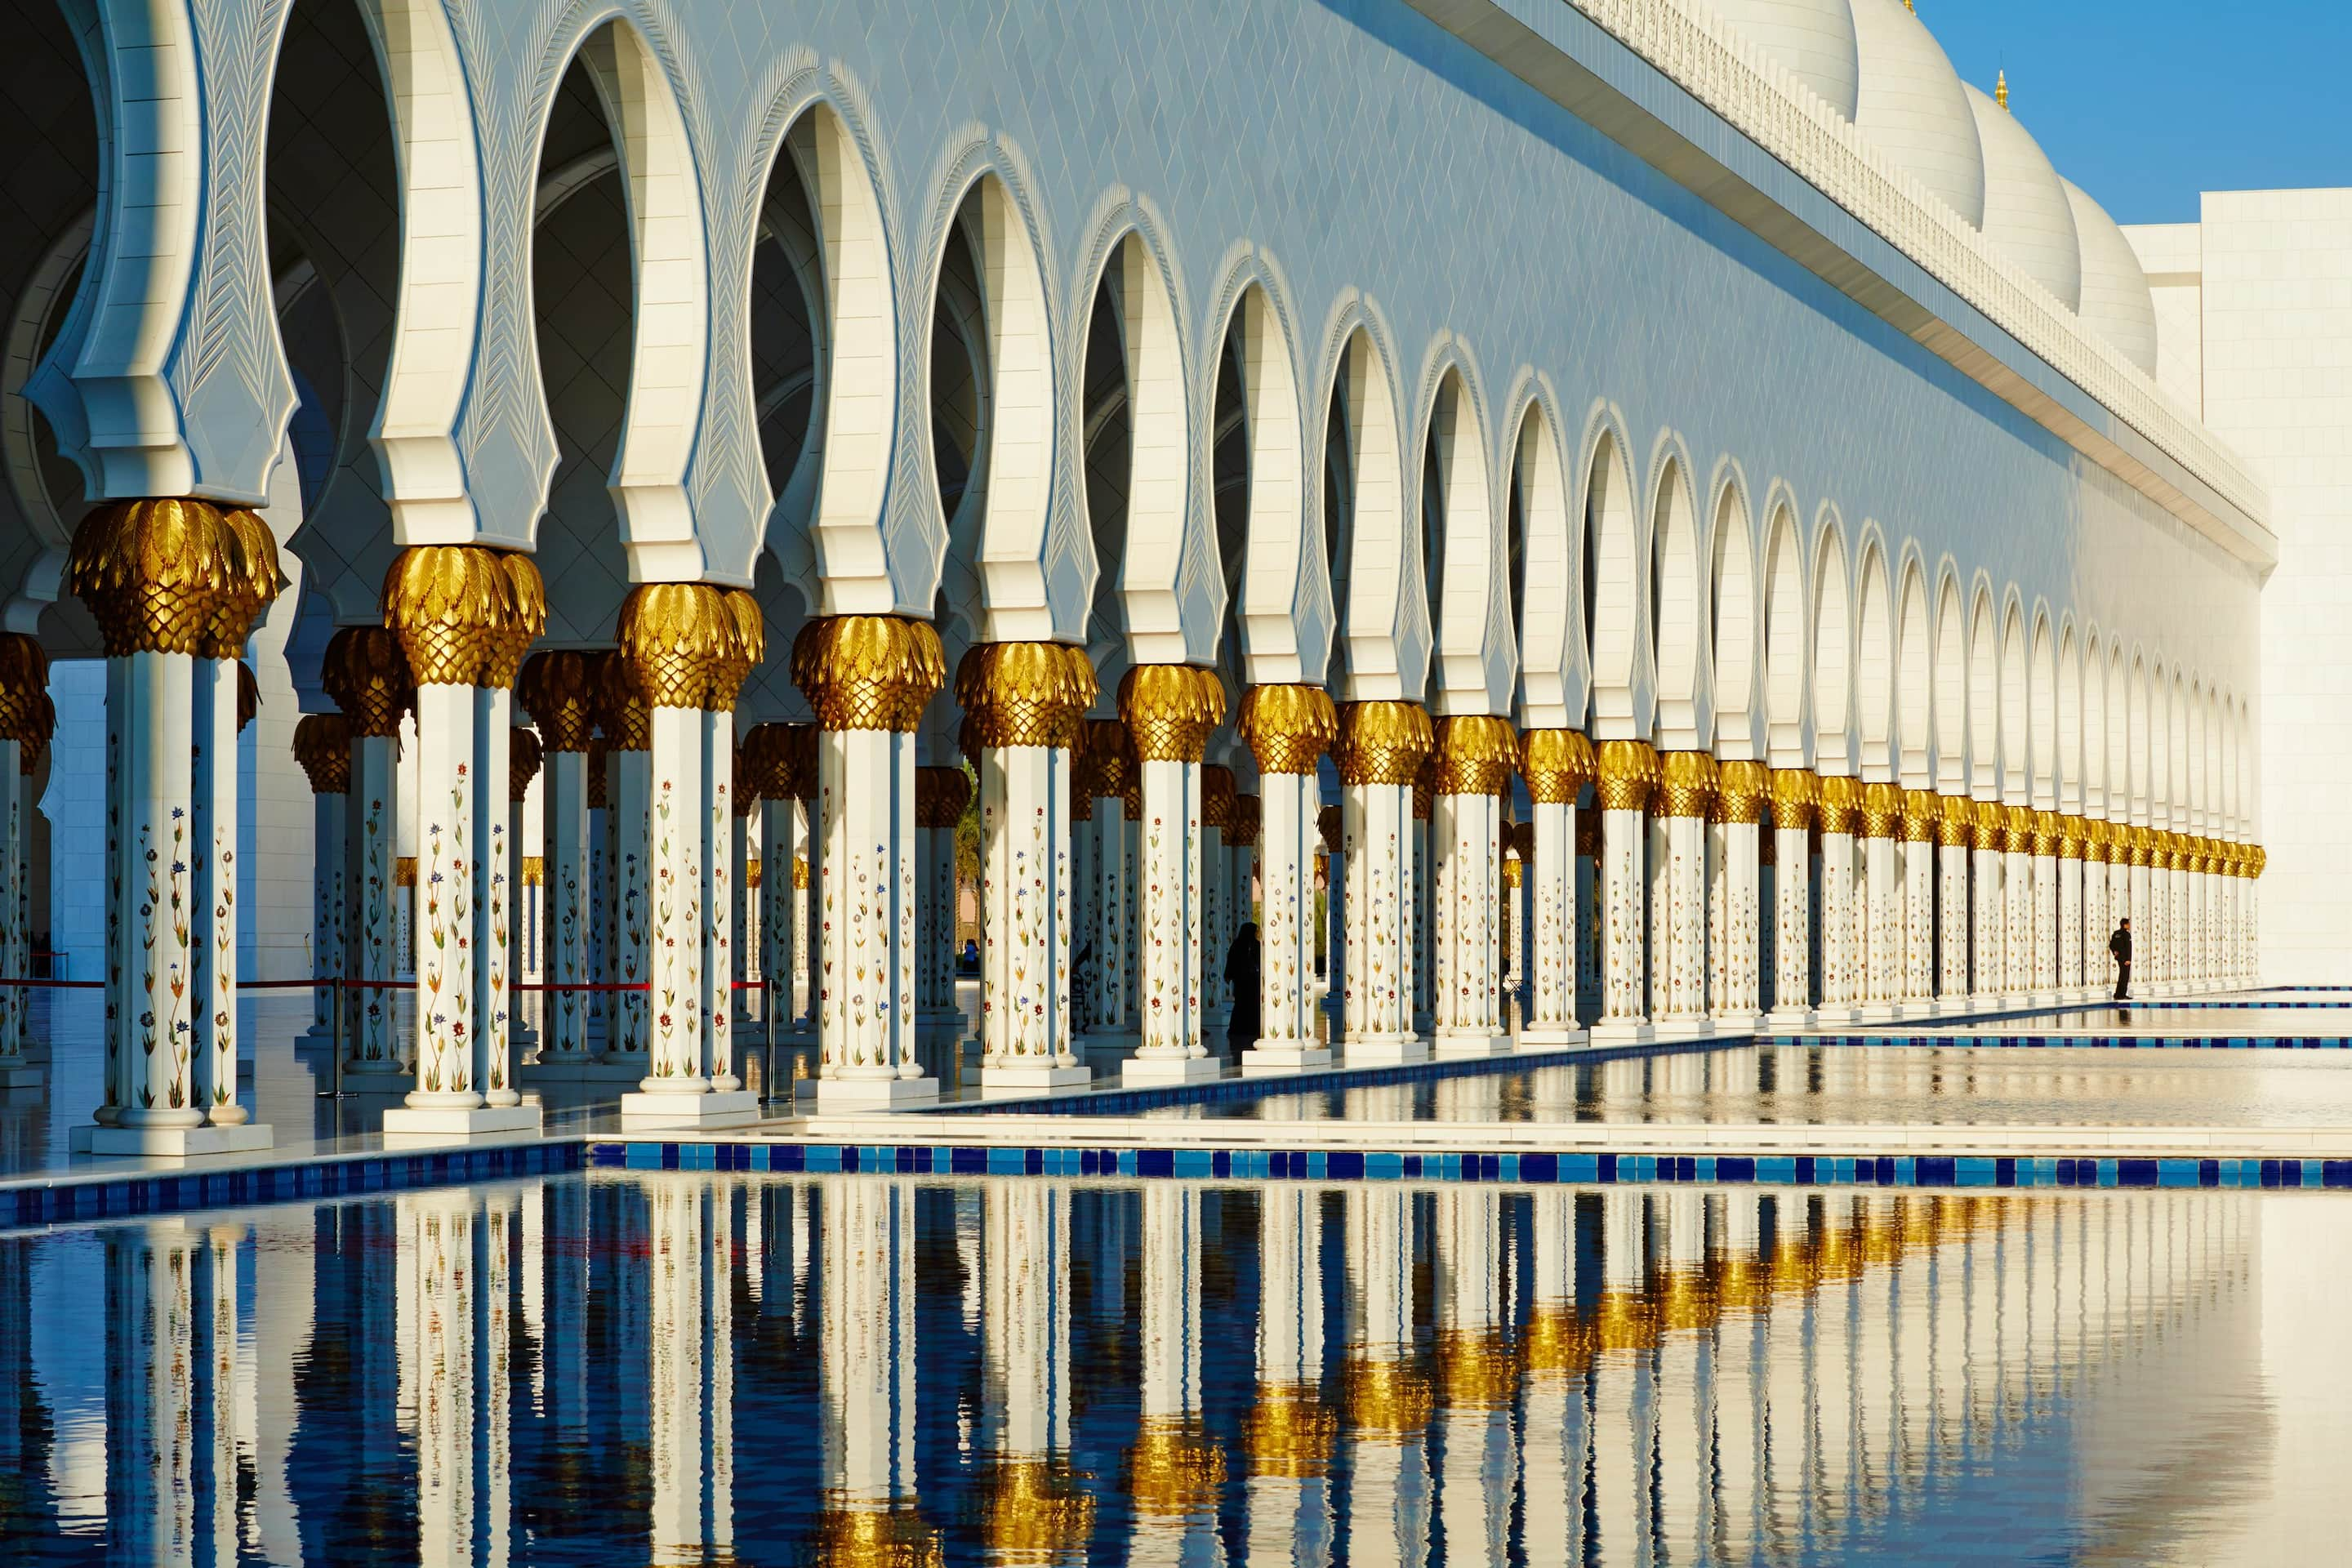 Pillars at the Sheikh Zayed Grand Mosque